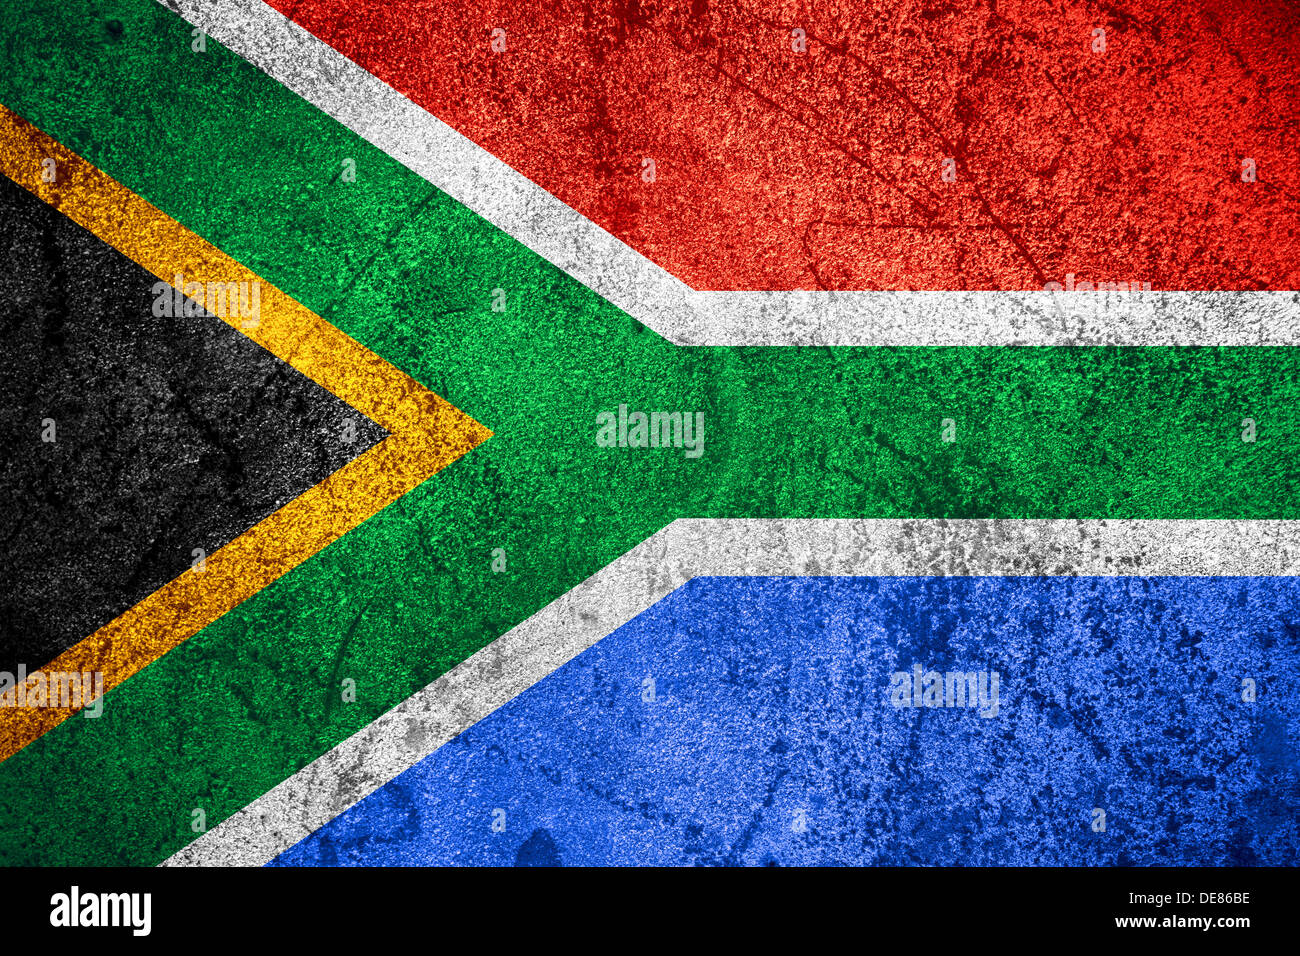 Republic of South Africa flag or RSA banner on rough pattern iron background - Stock Image